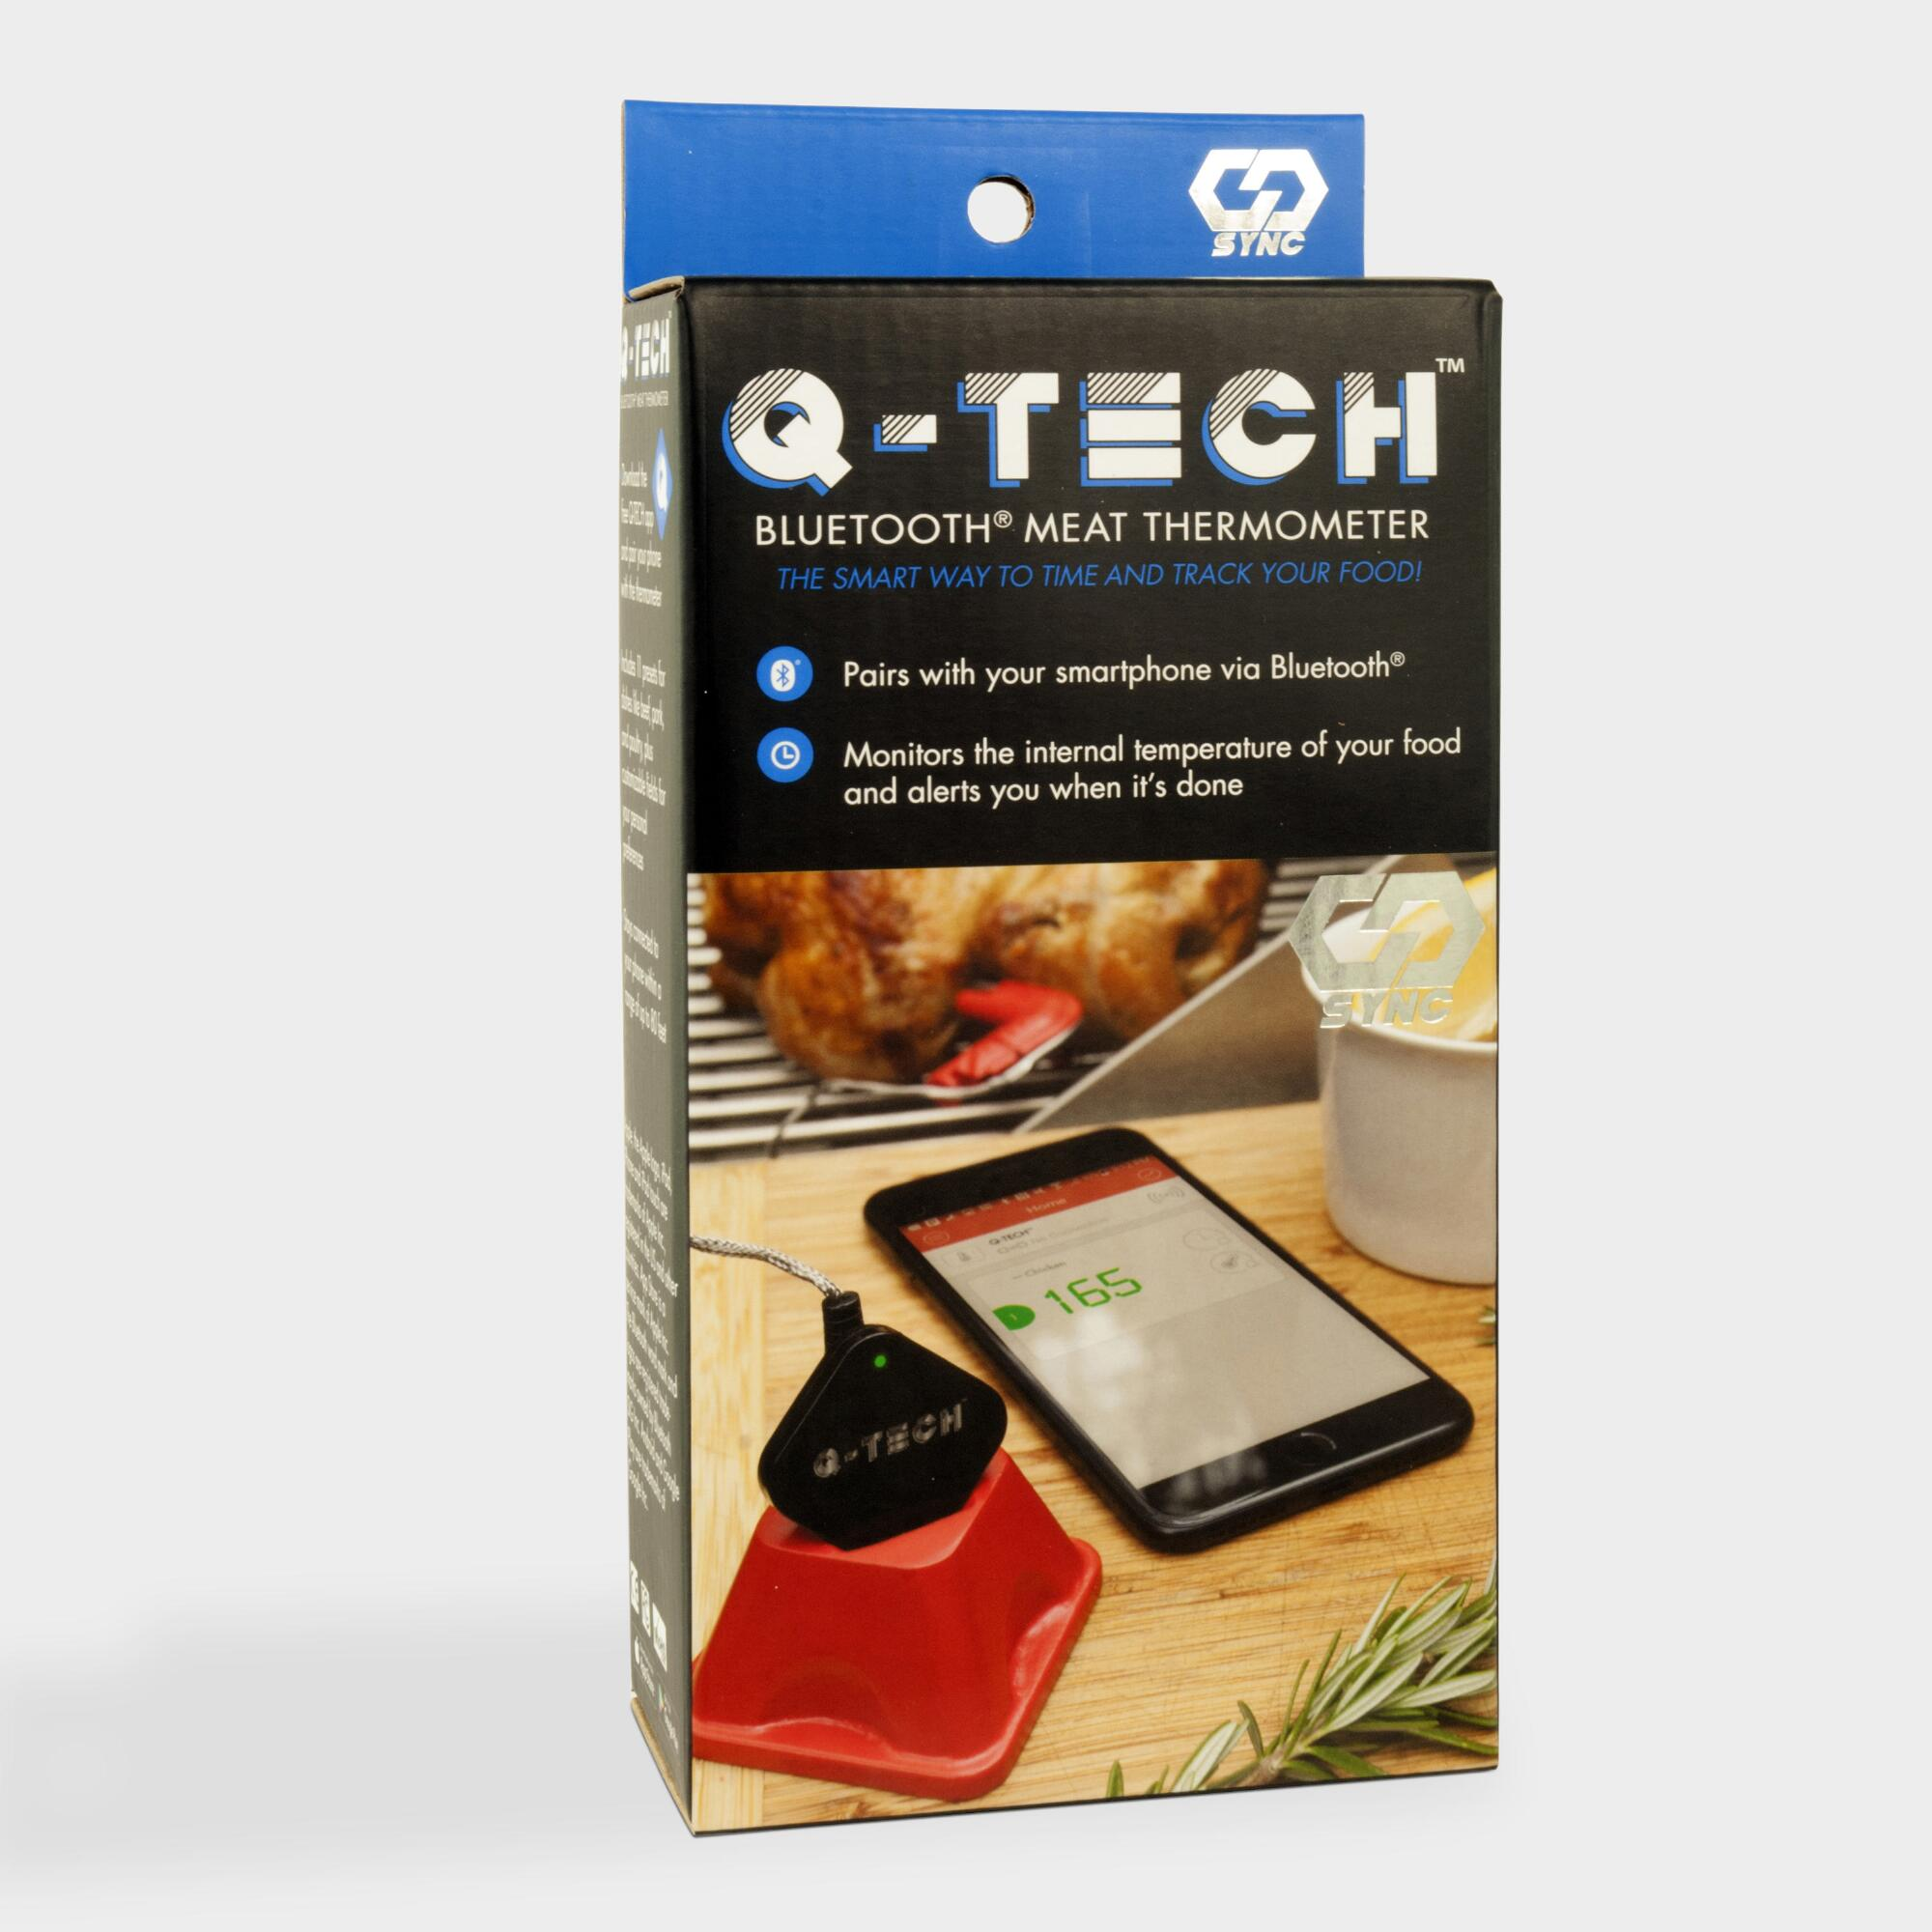 Q Tech Bluetooth BBQ Grill Thermometer by World Market